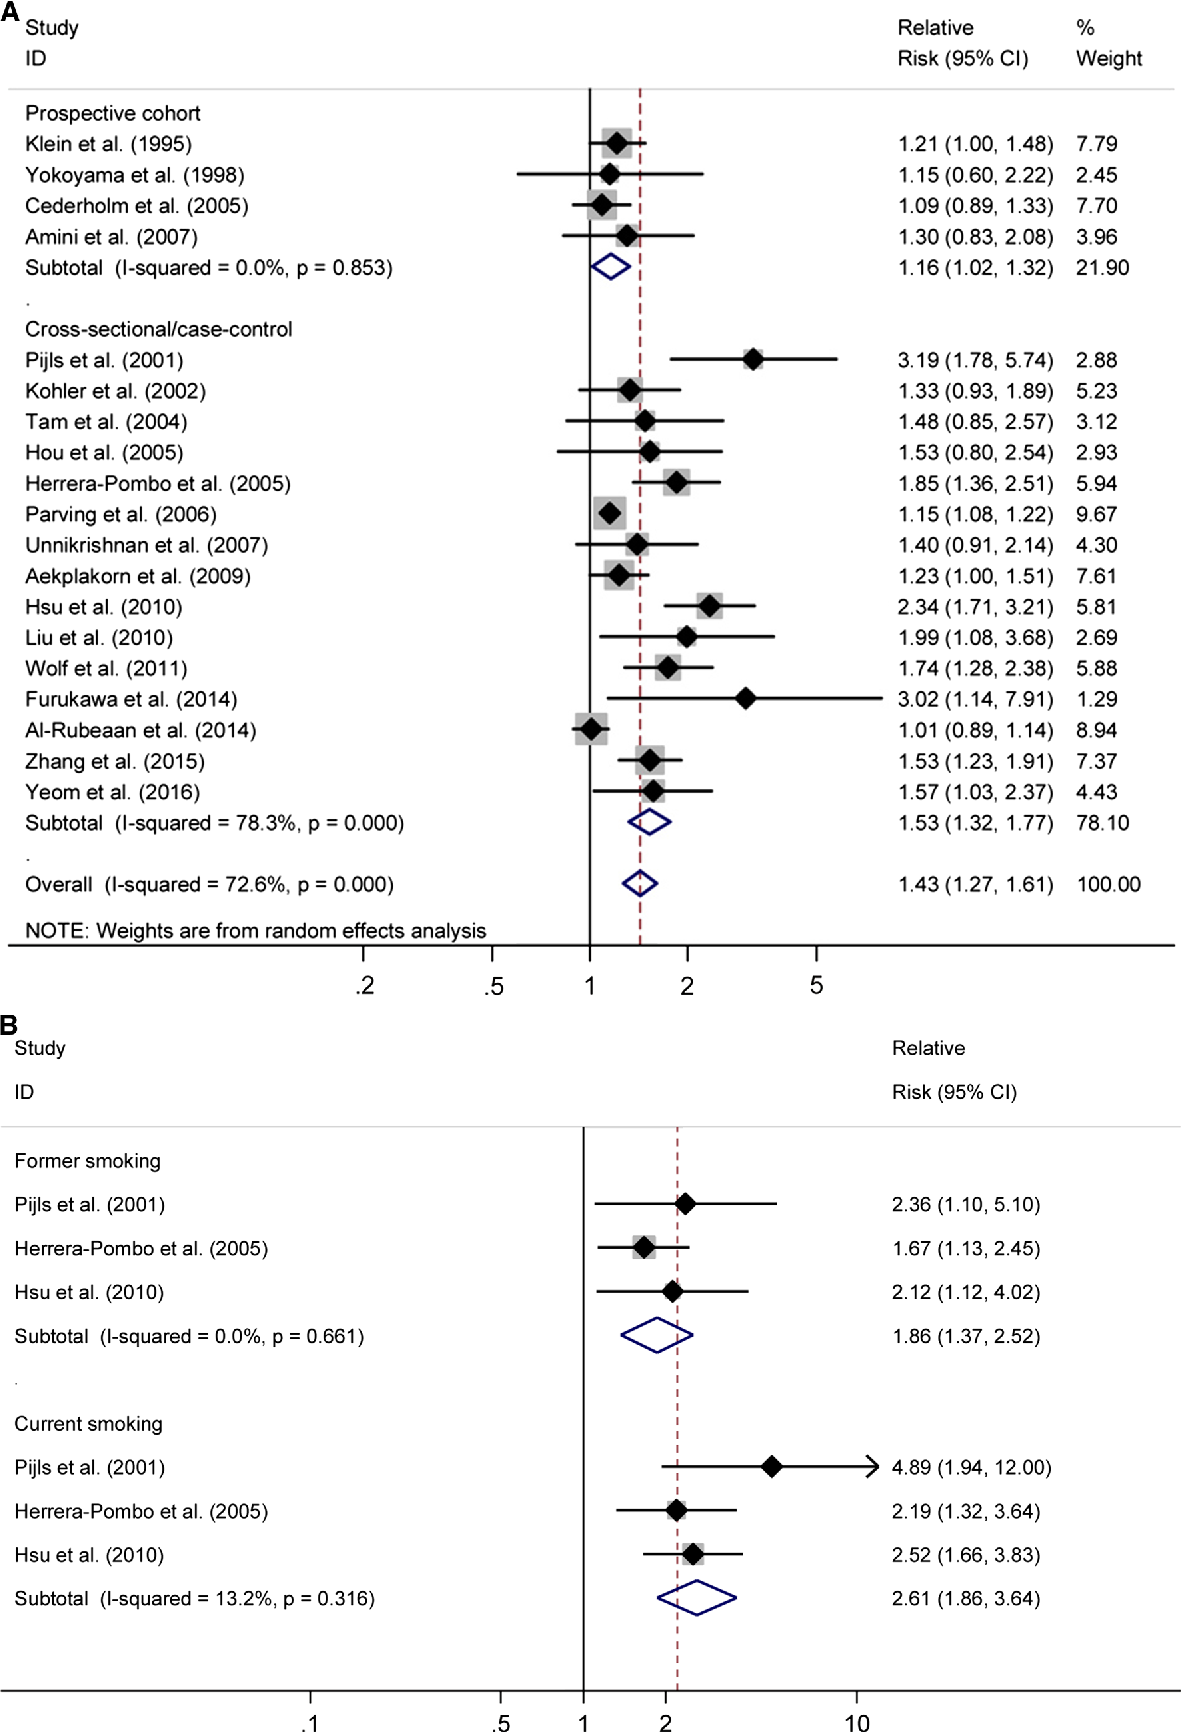 Cigarette smoking and risk of albuminuria in patients with